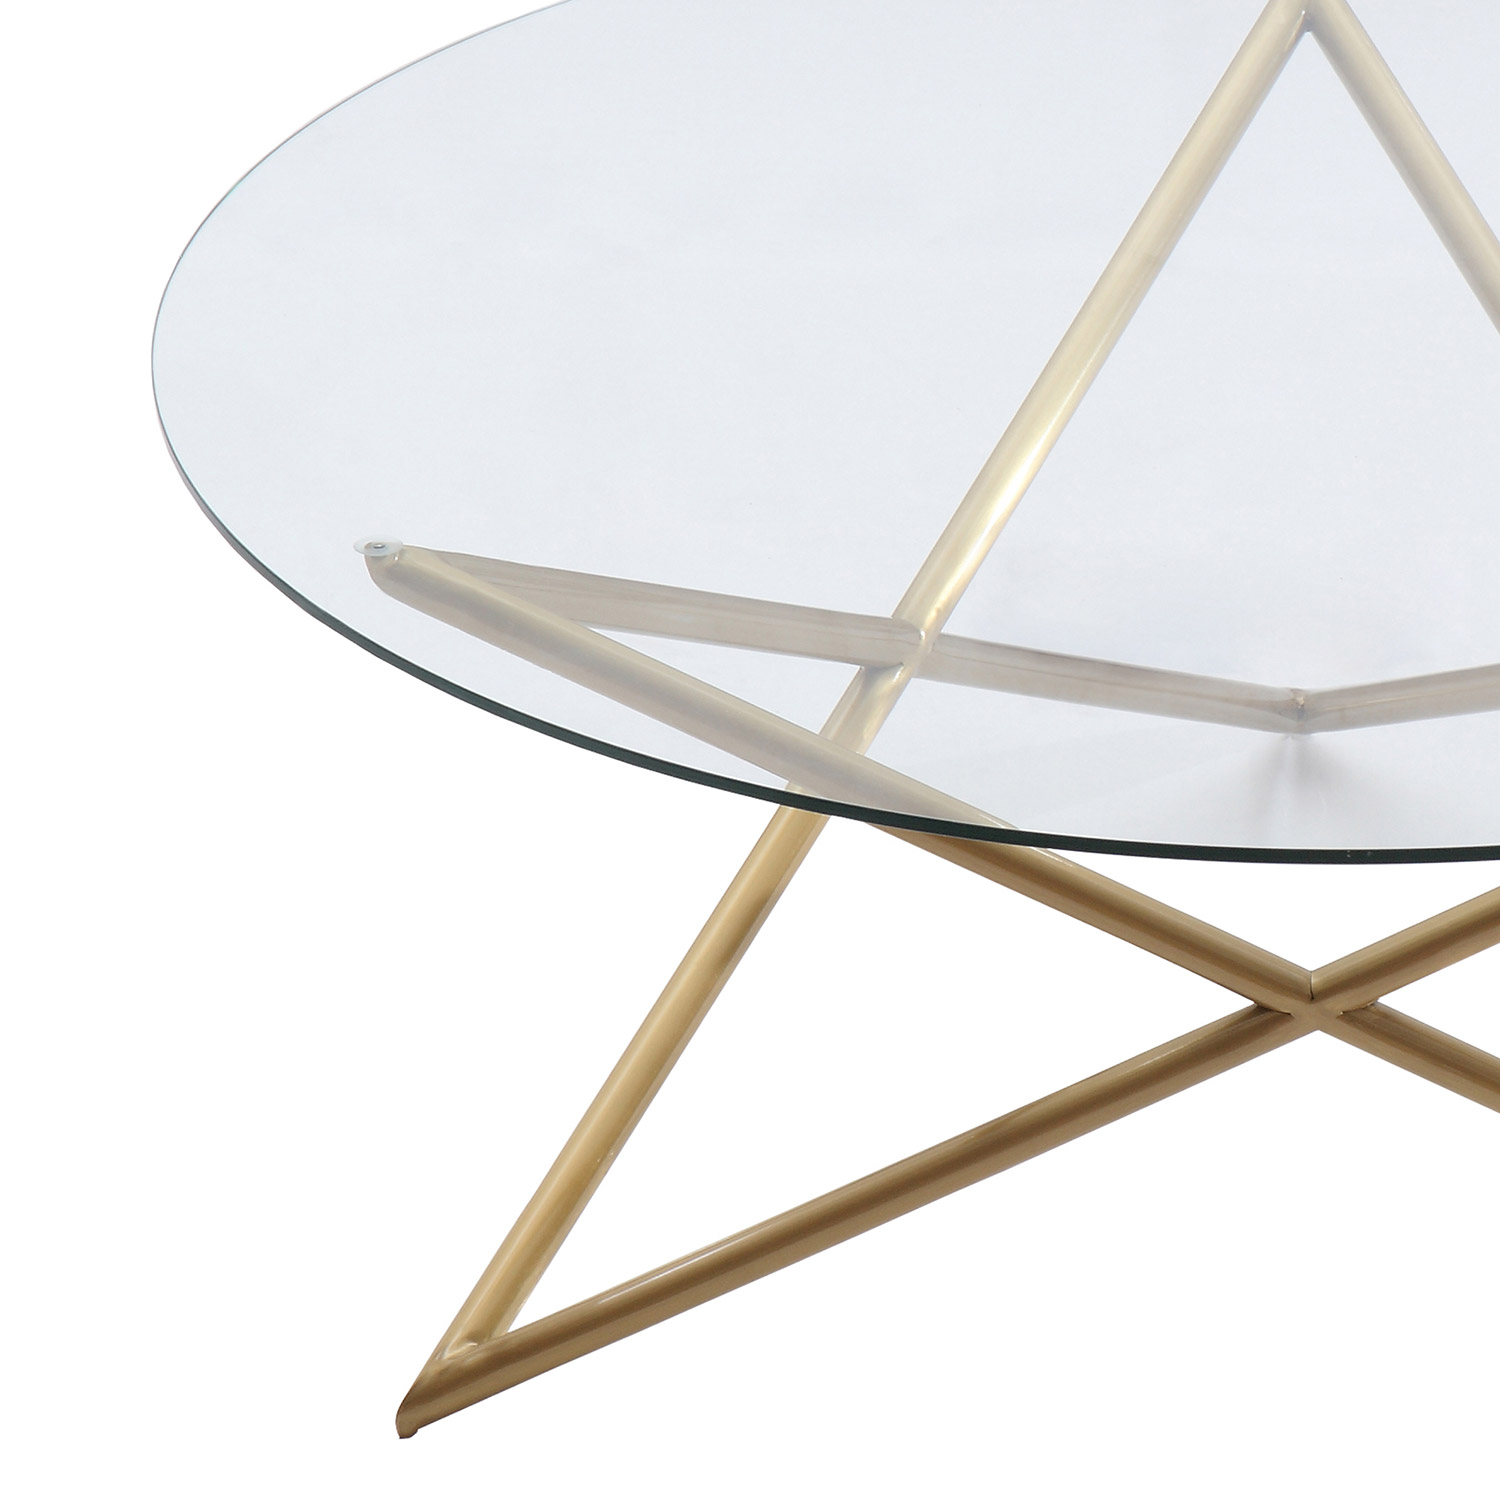 Armen Living Crest Coffee Table Gold AL LCCRCOGLGD at Homelement